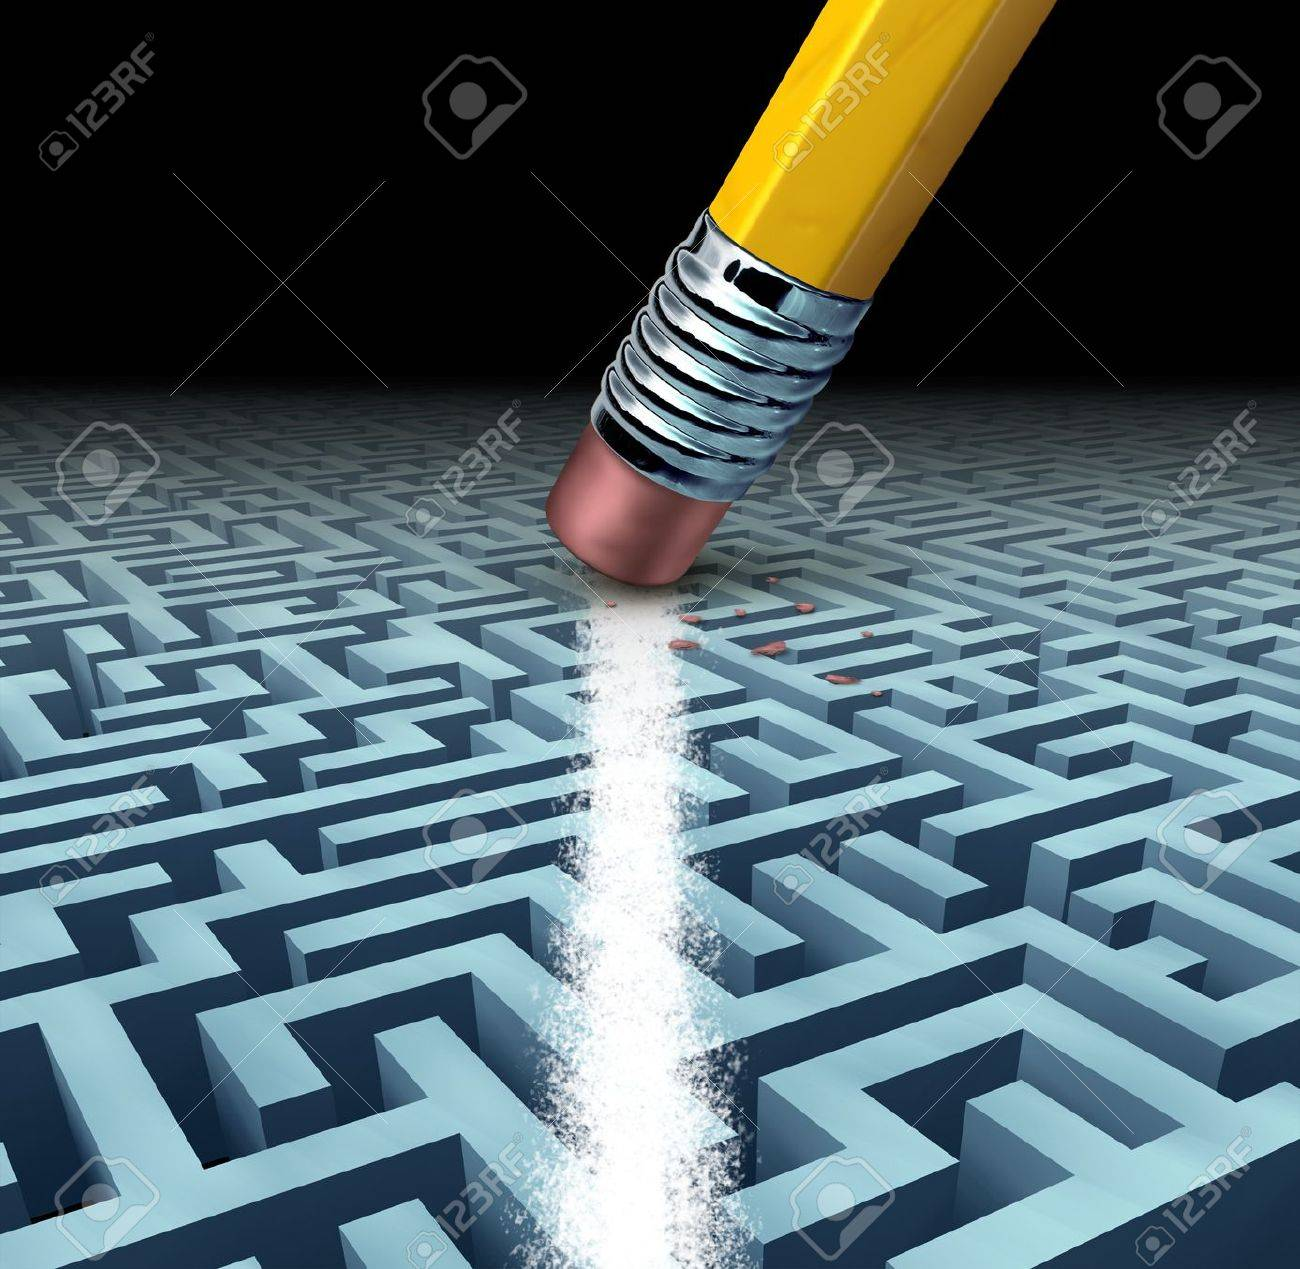 Finding solutions and solving a problem searching the best creative answers against a complicated and complex three dimensional maze having a clear shortcut path created by erasing the labyrinth with a pencil eraser Stock Photo - 16456556